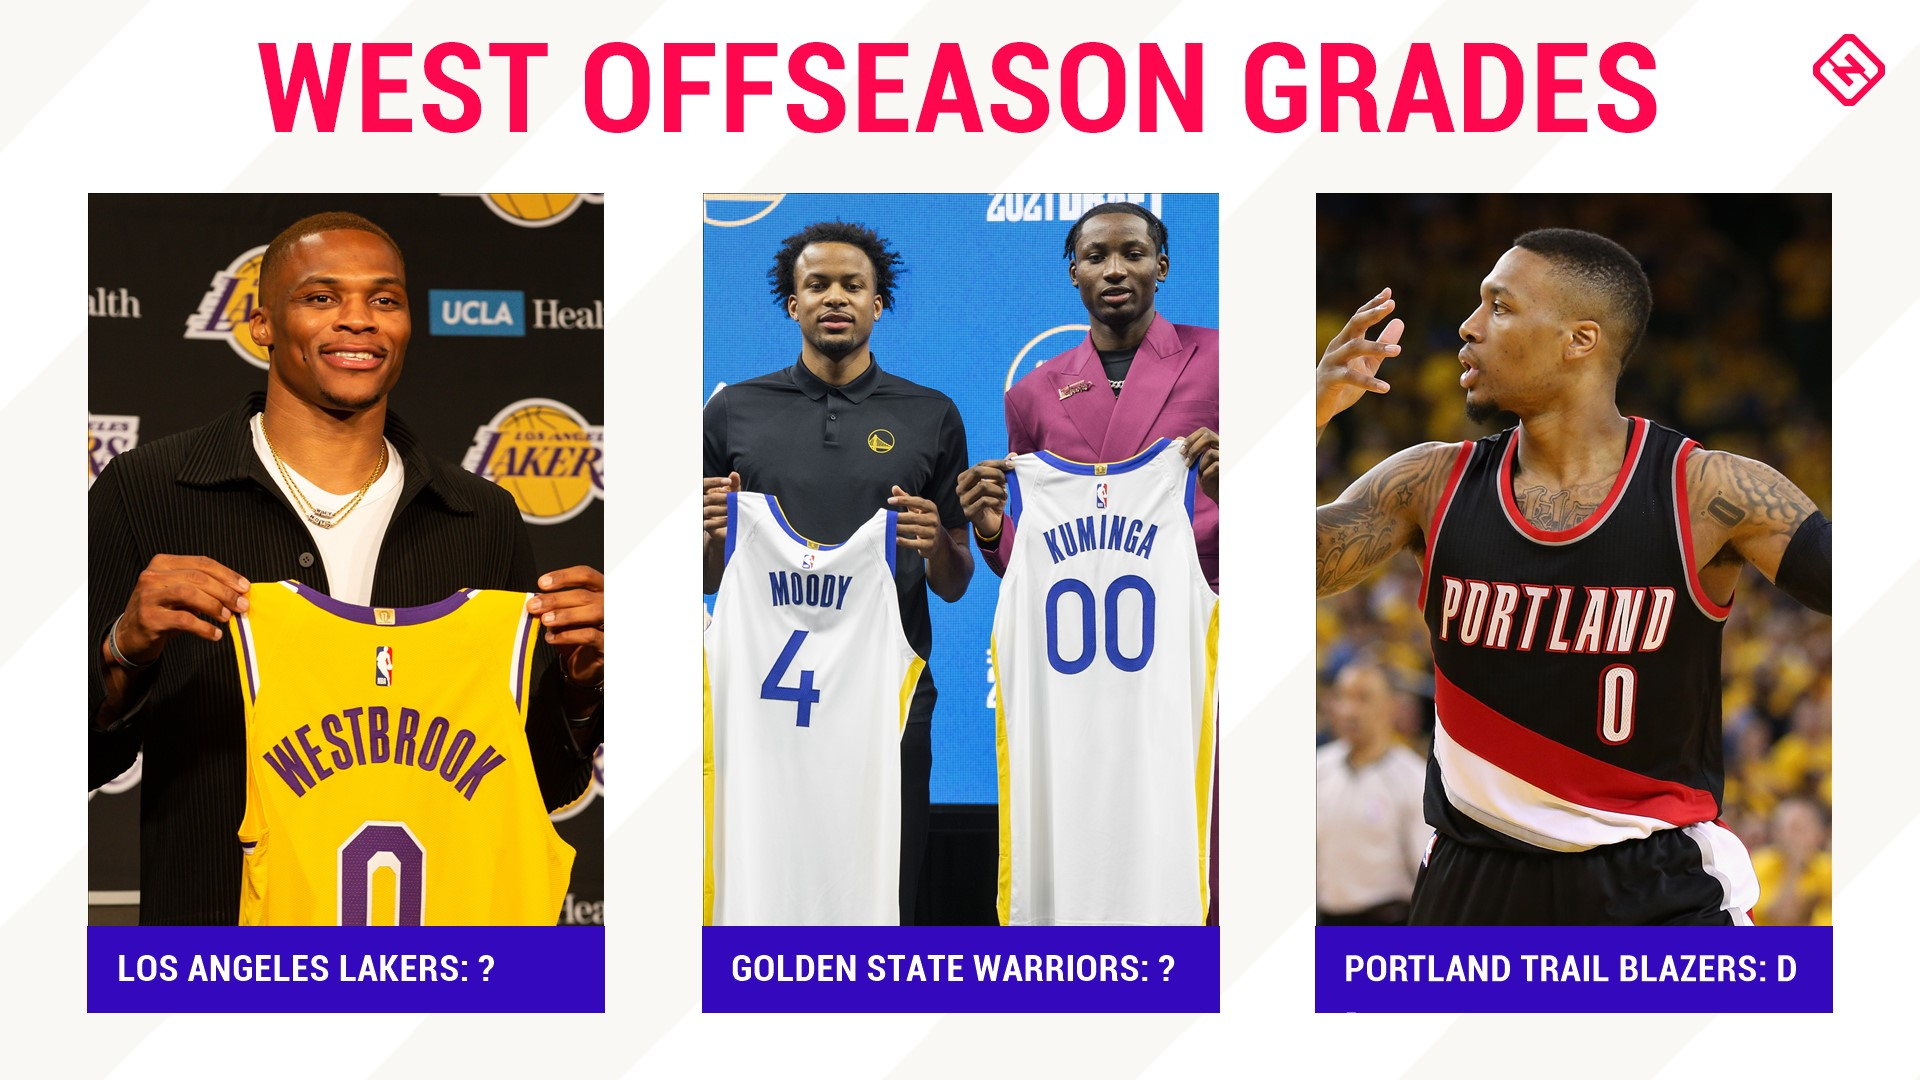 Did the Lakers overreact? Are we sure the Warriors are back? NBA offseason grades for the Western Conference...